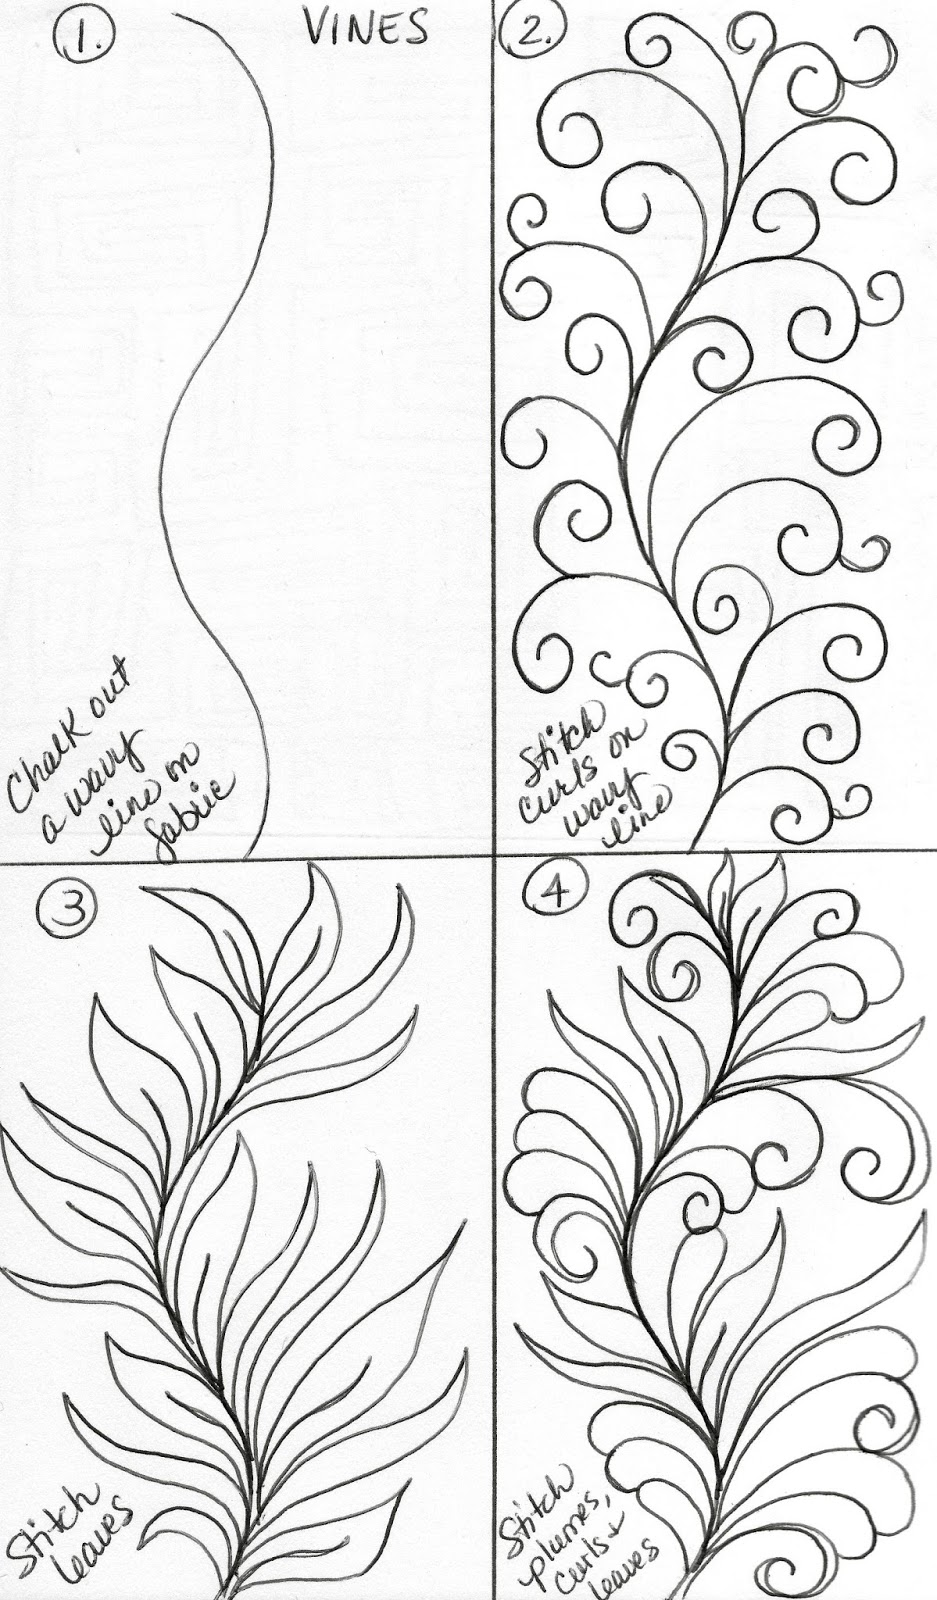 Vine Designs Art : Luann kessi sketch book vine designs